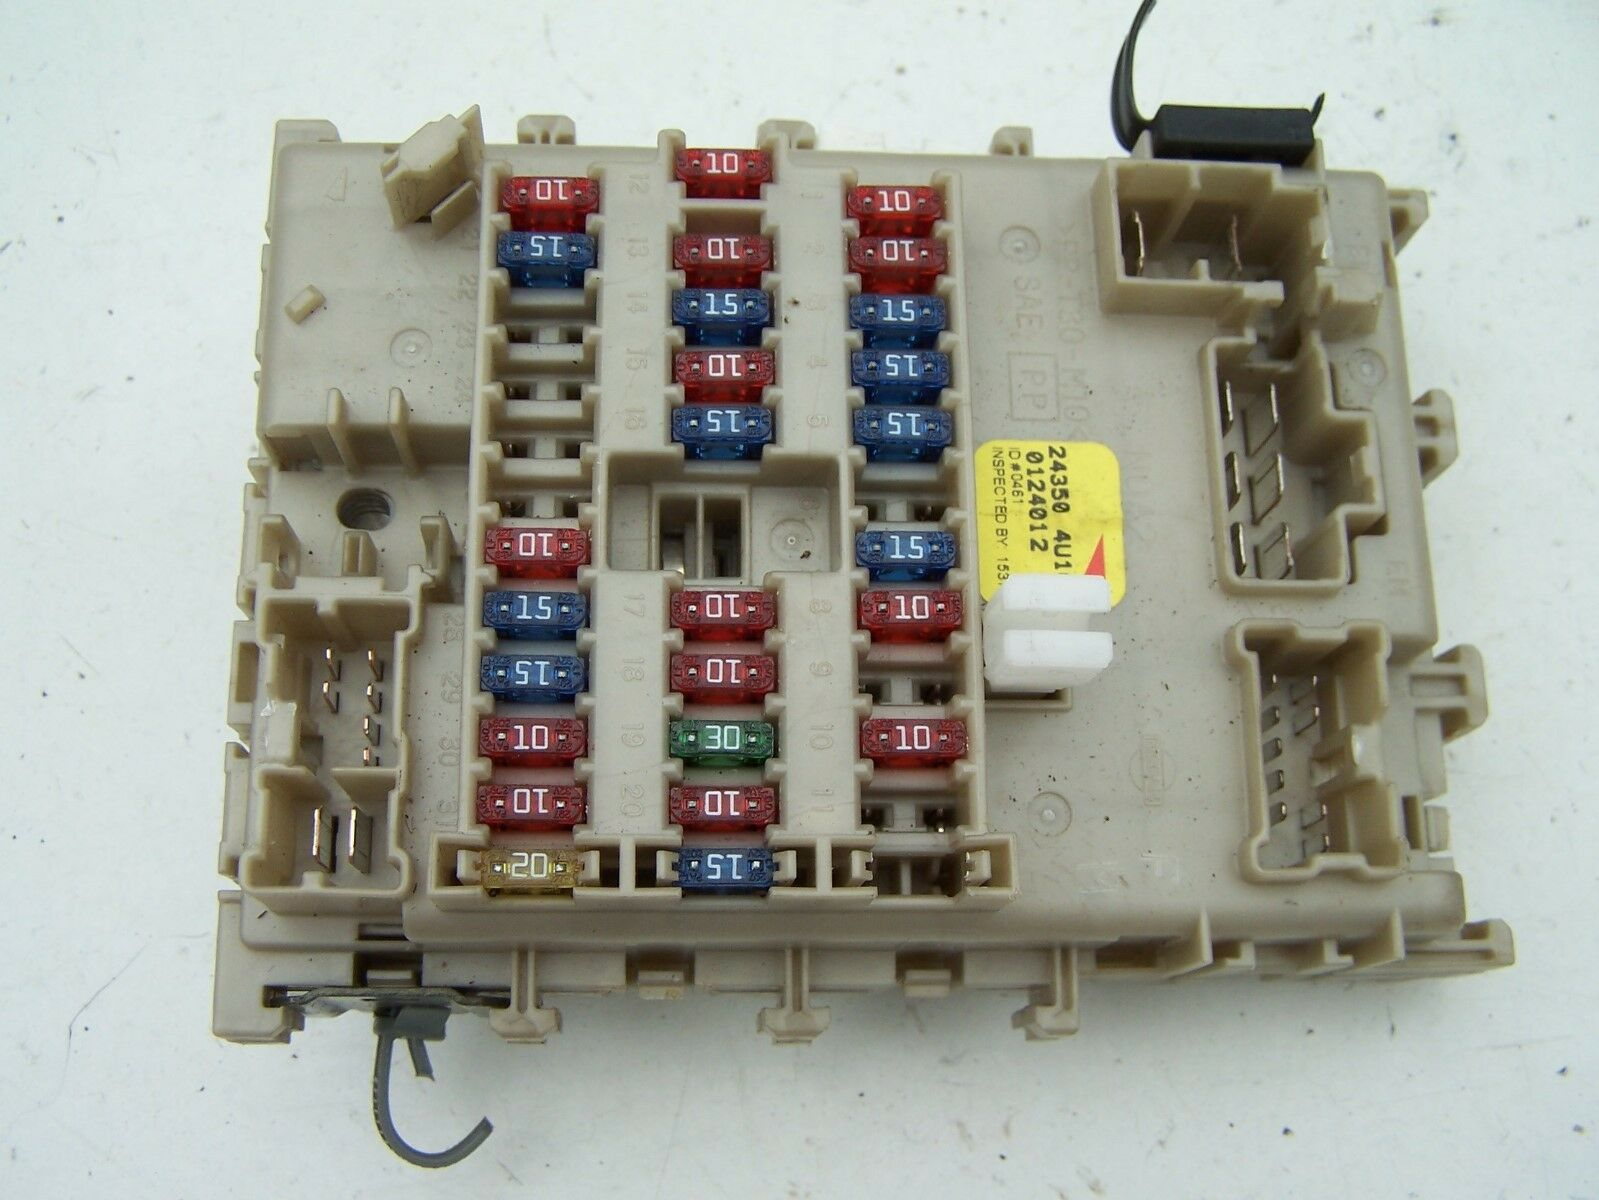 Nissan Almera Tino Fuse box (2000-2005) 1 of 3Only 1 available ...